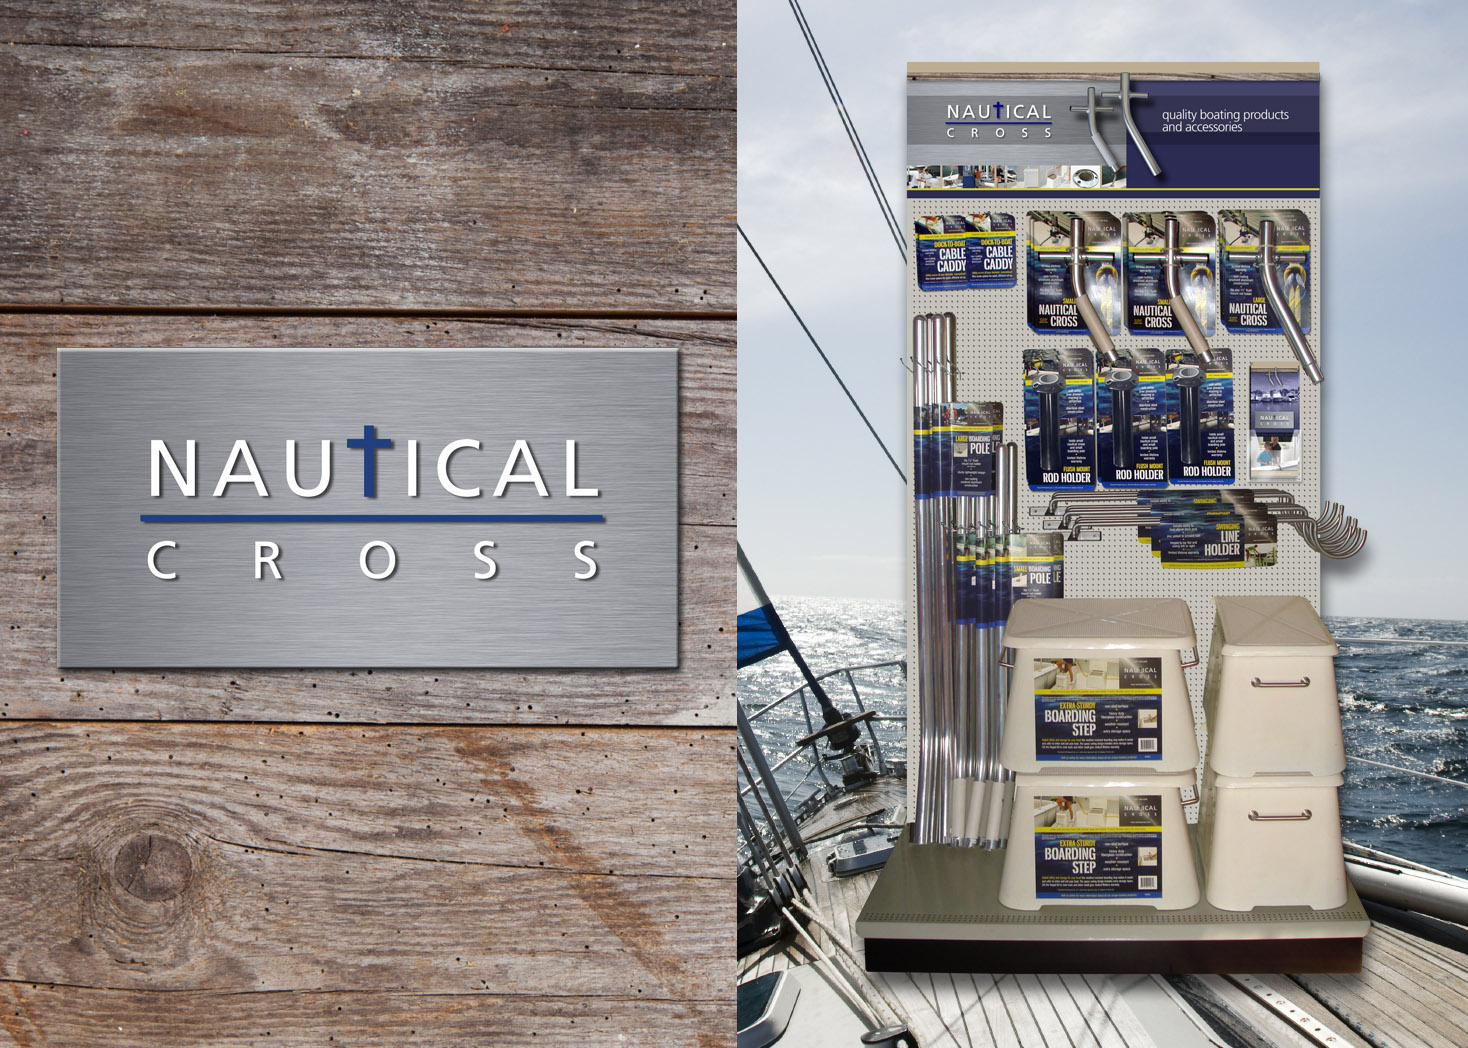 Nautical Cross Point of Purchase Display Design - Lehman Design